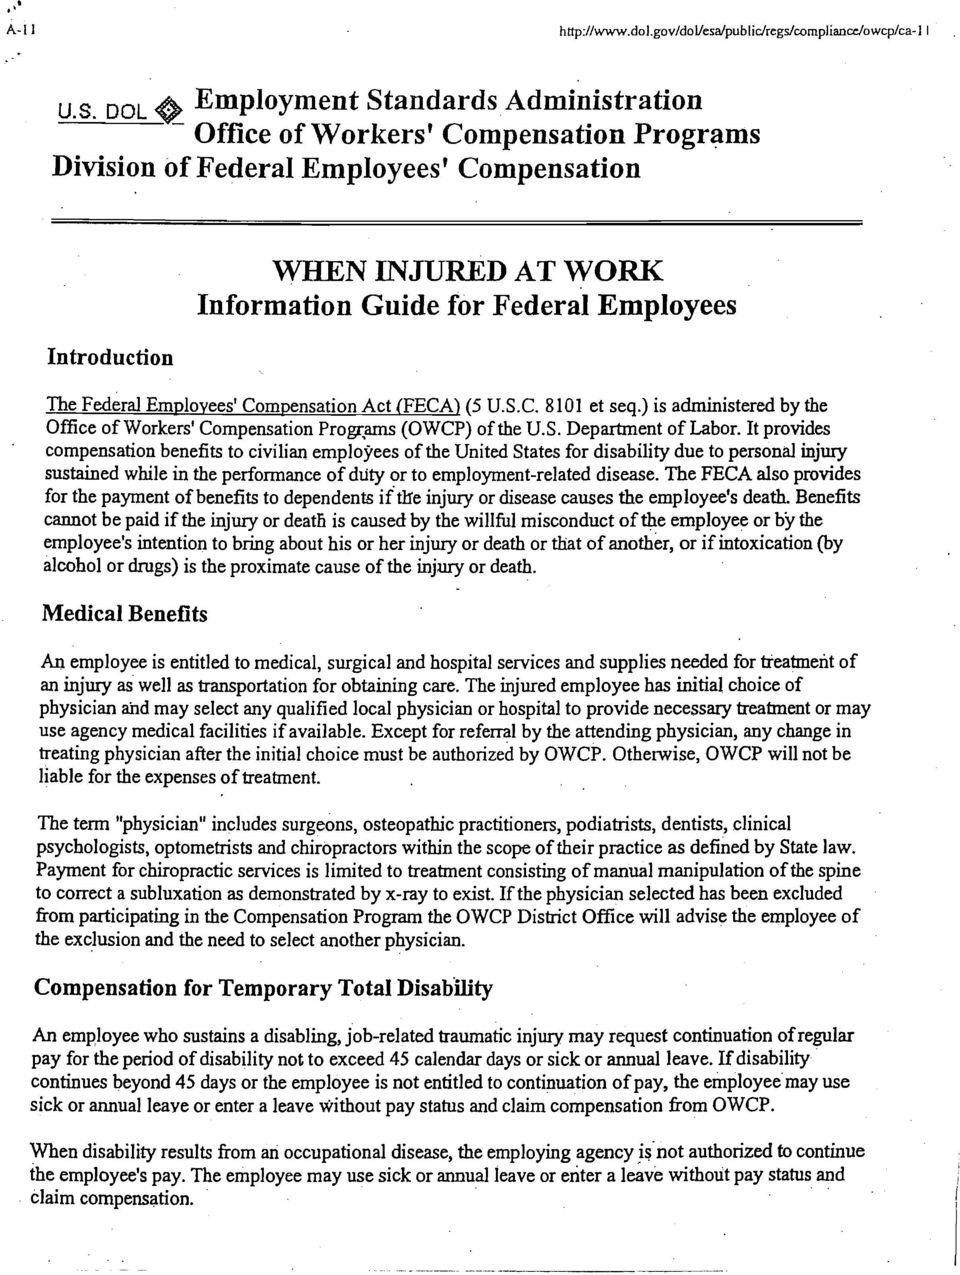 Employees ' The ~ederal Employees' Compensation Act (FECA] (5 U.S.C. 8101 et seq.) is administered by the Office of Workers' Compensation Progrgrams (OWCP) of the U.S. Department of Labor.